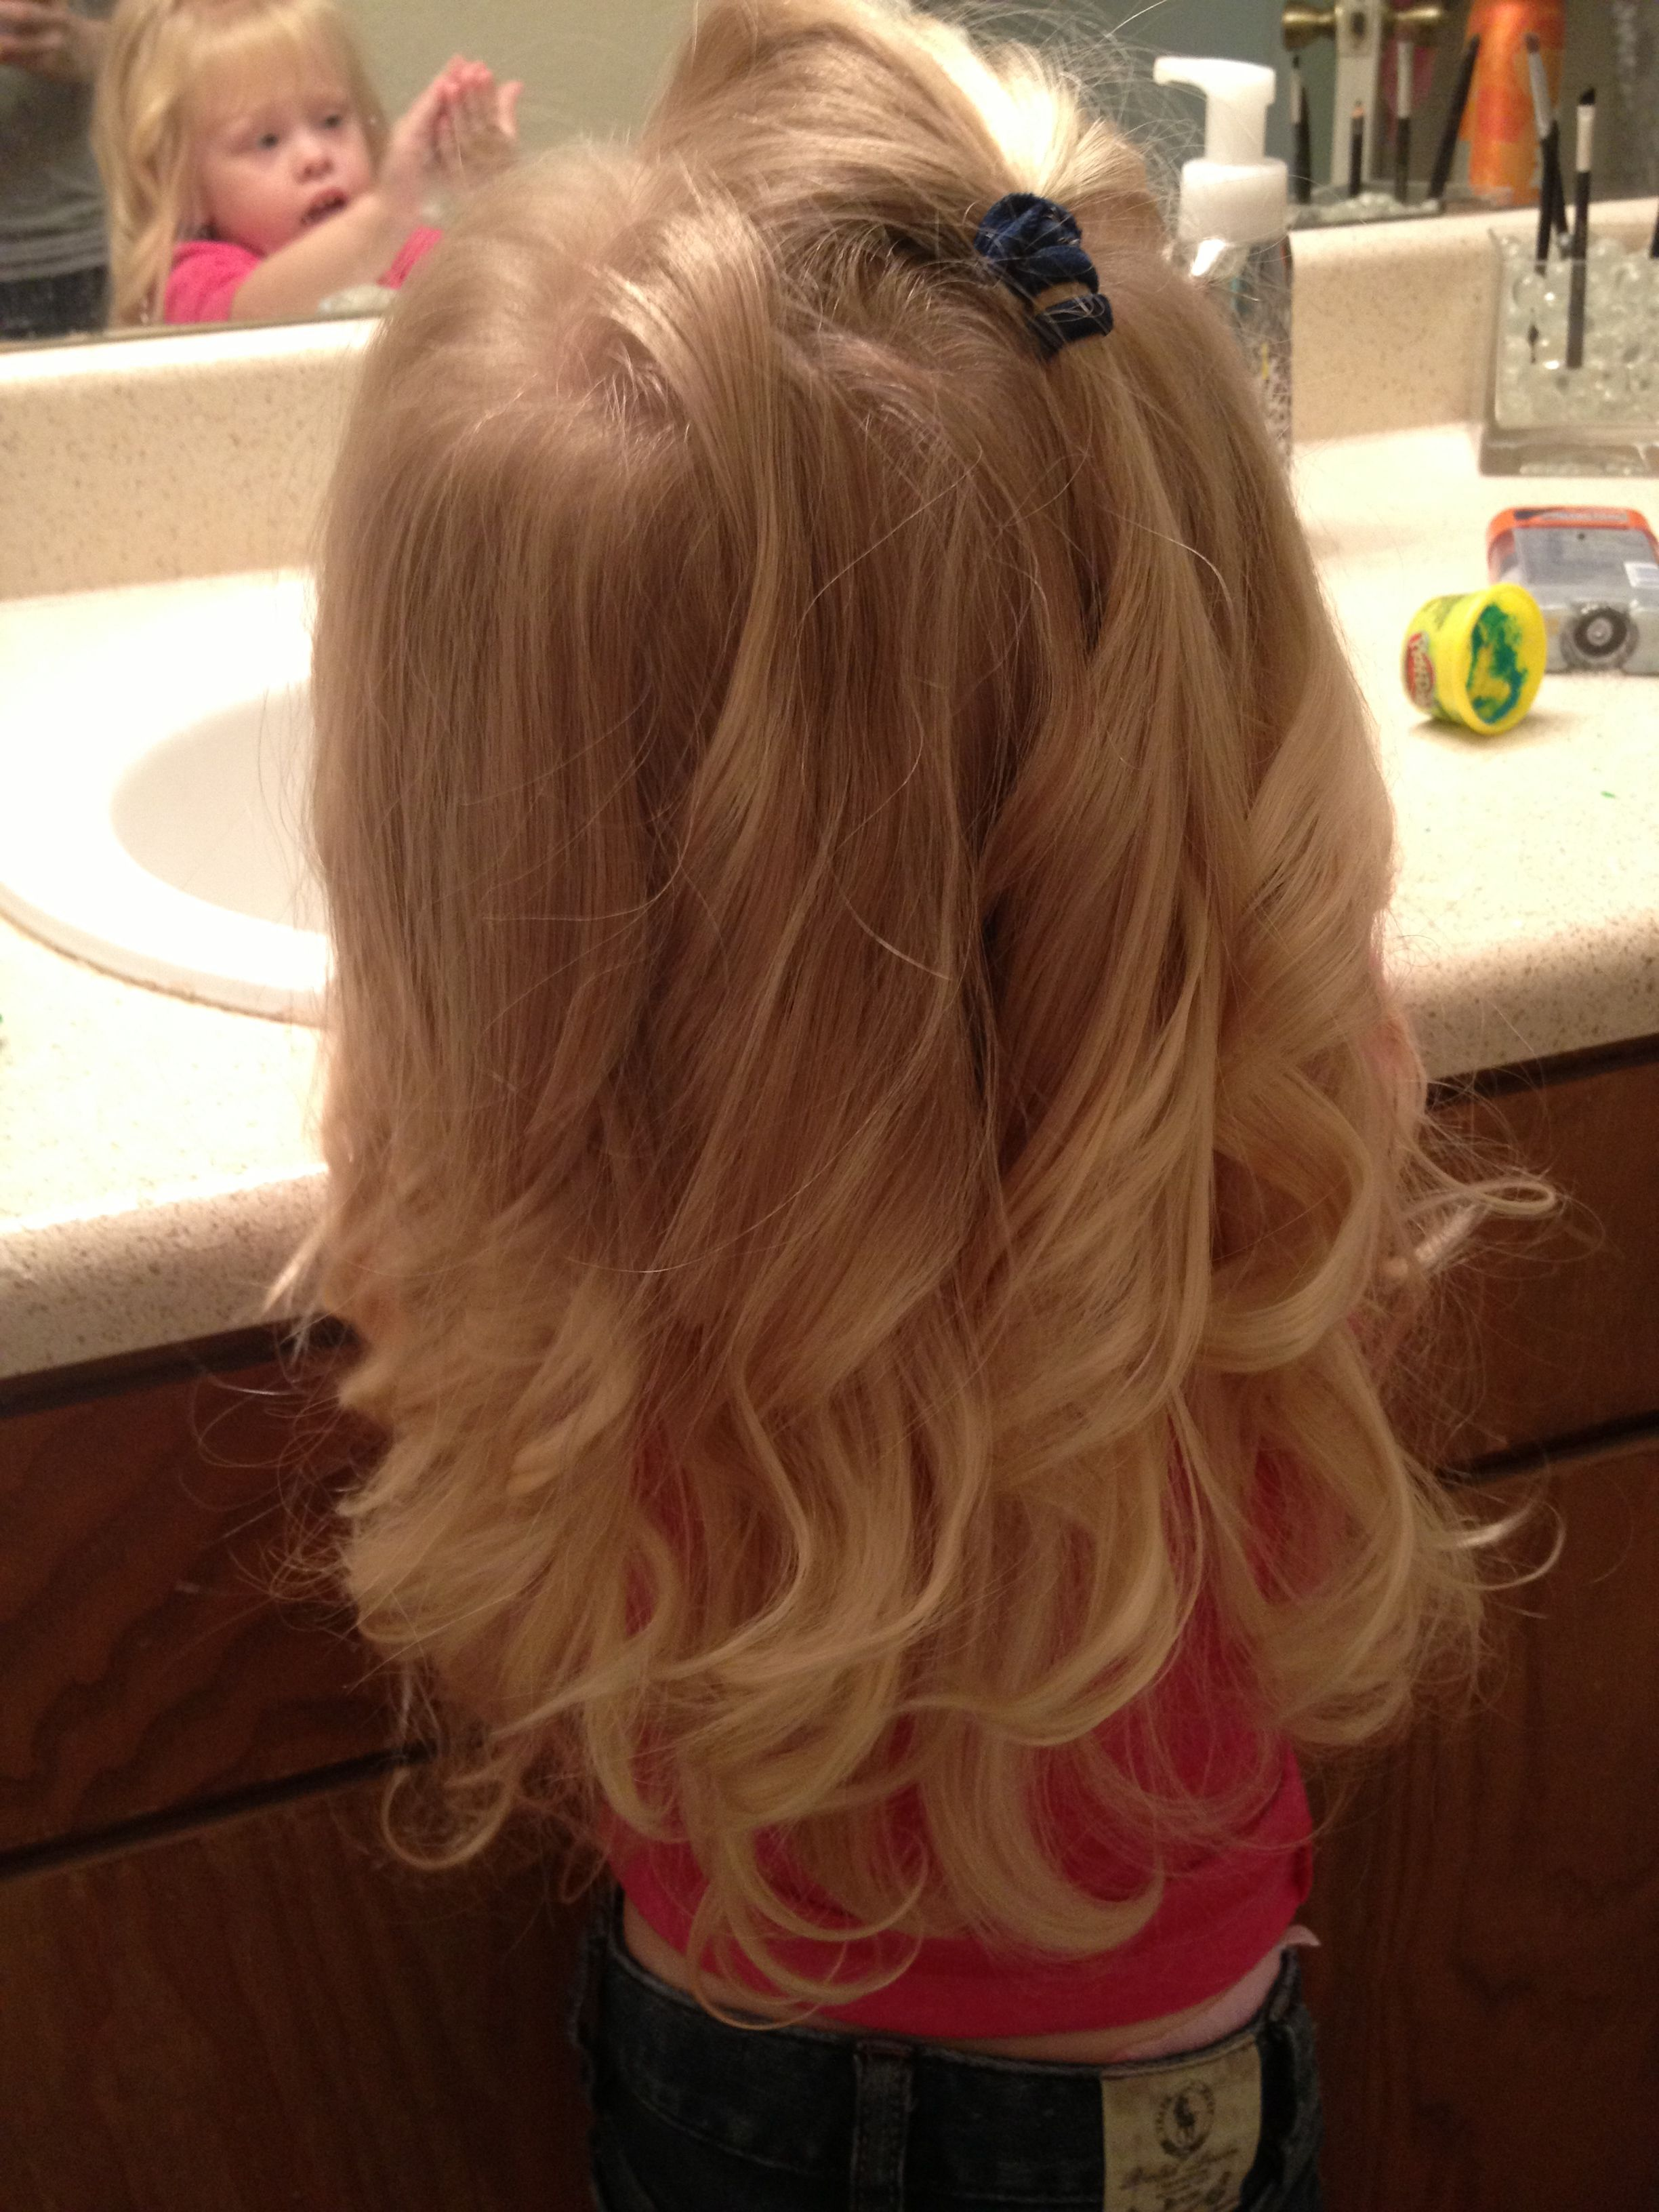 Wavy Toddler Hair With Curling Wand Holy Crap This Is